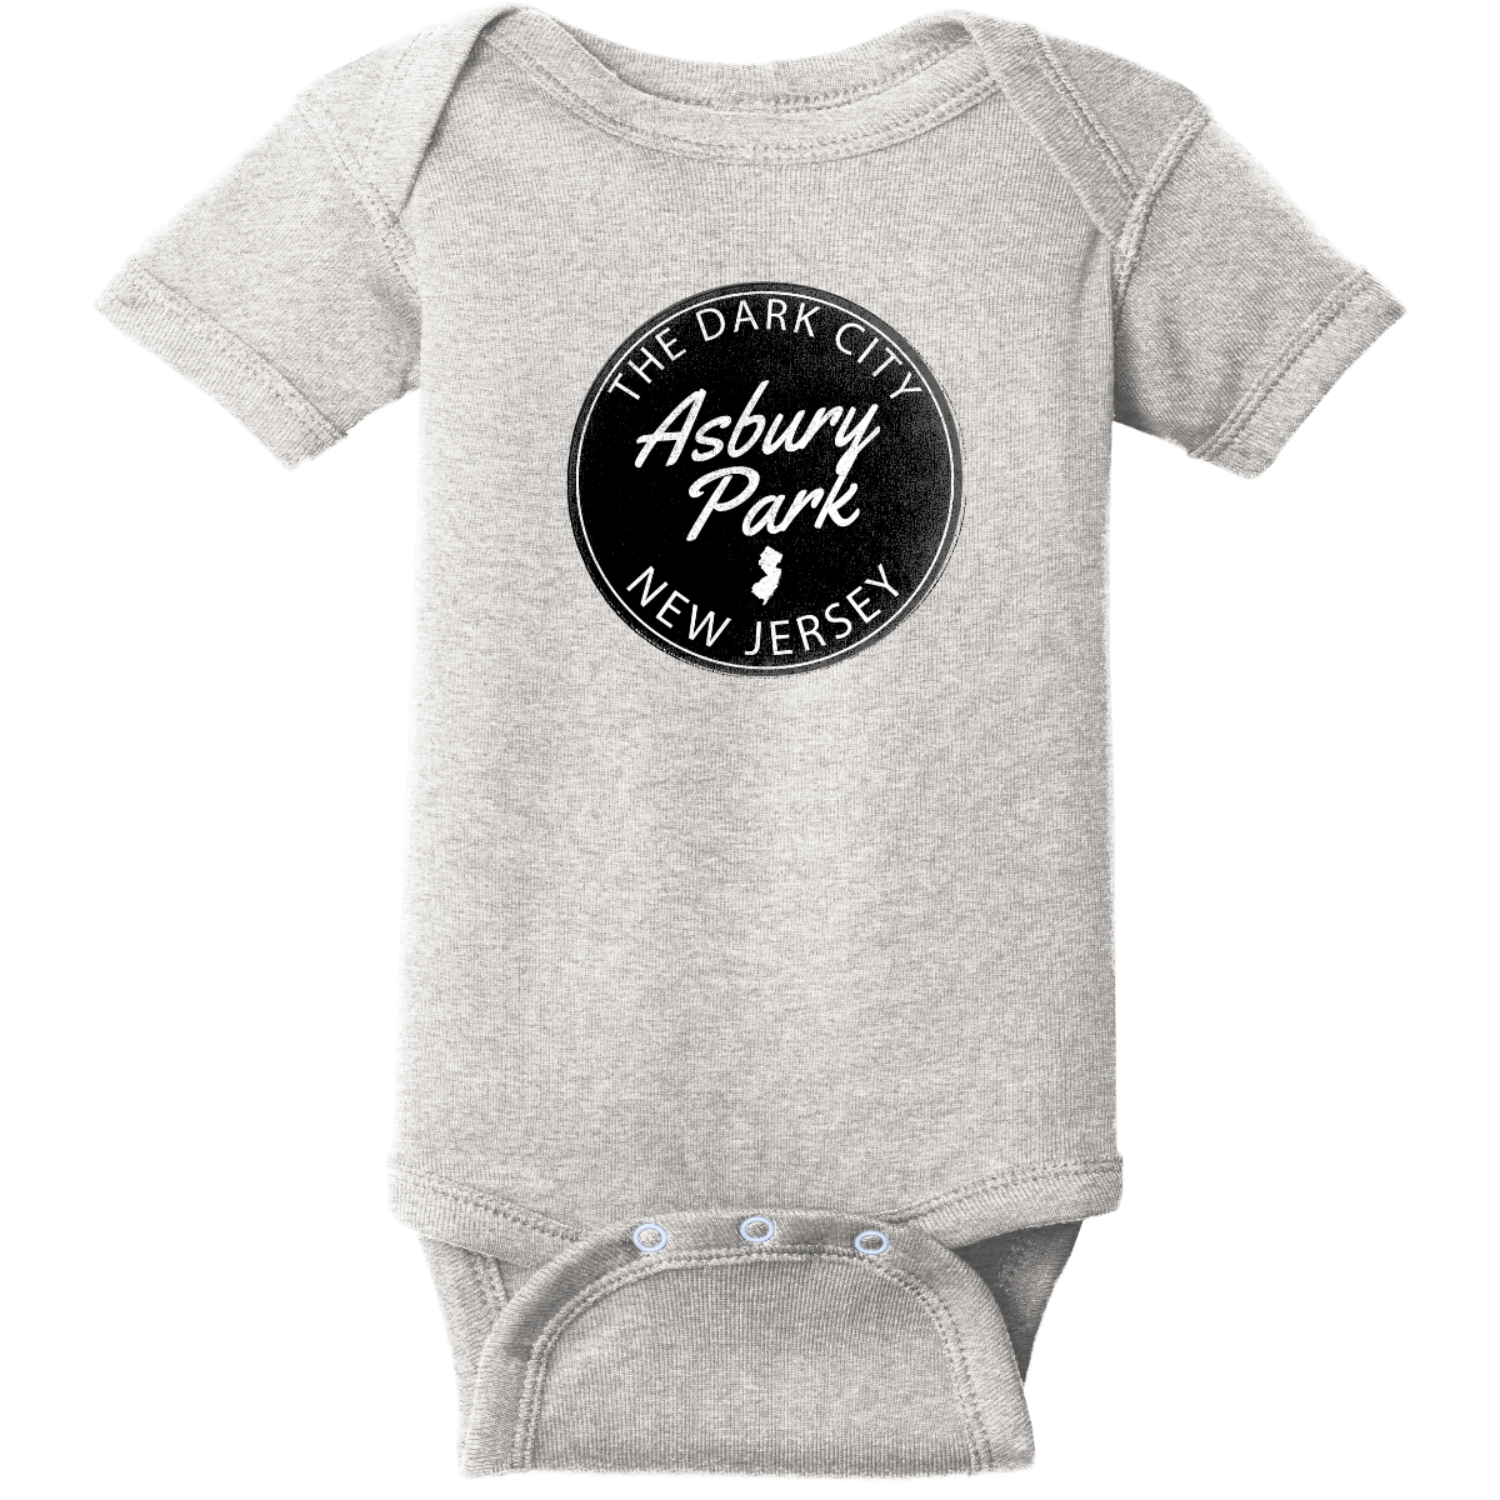 Asbury Park NJ Dark City Baby Bodysuit Heather Rabbit Skins Infant Short Sleeve Infant Rib Bodysuit RS4400